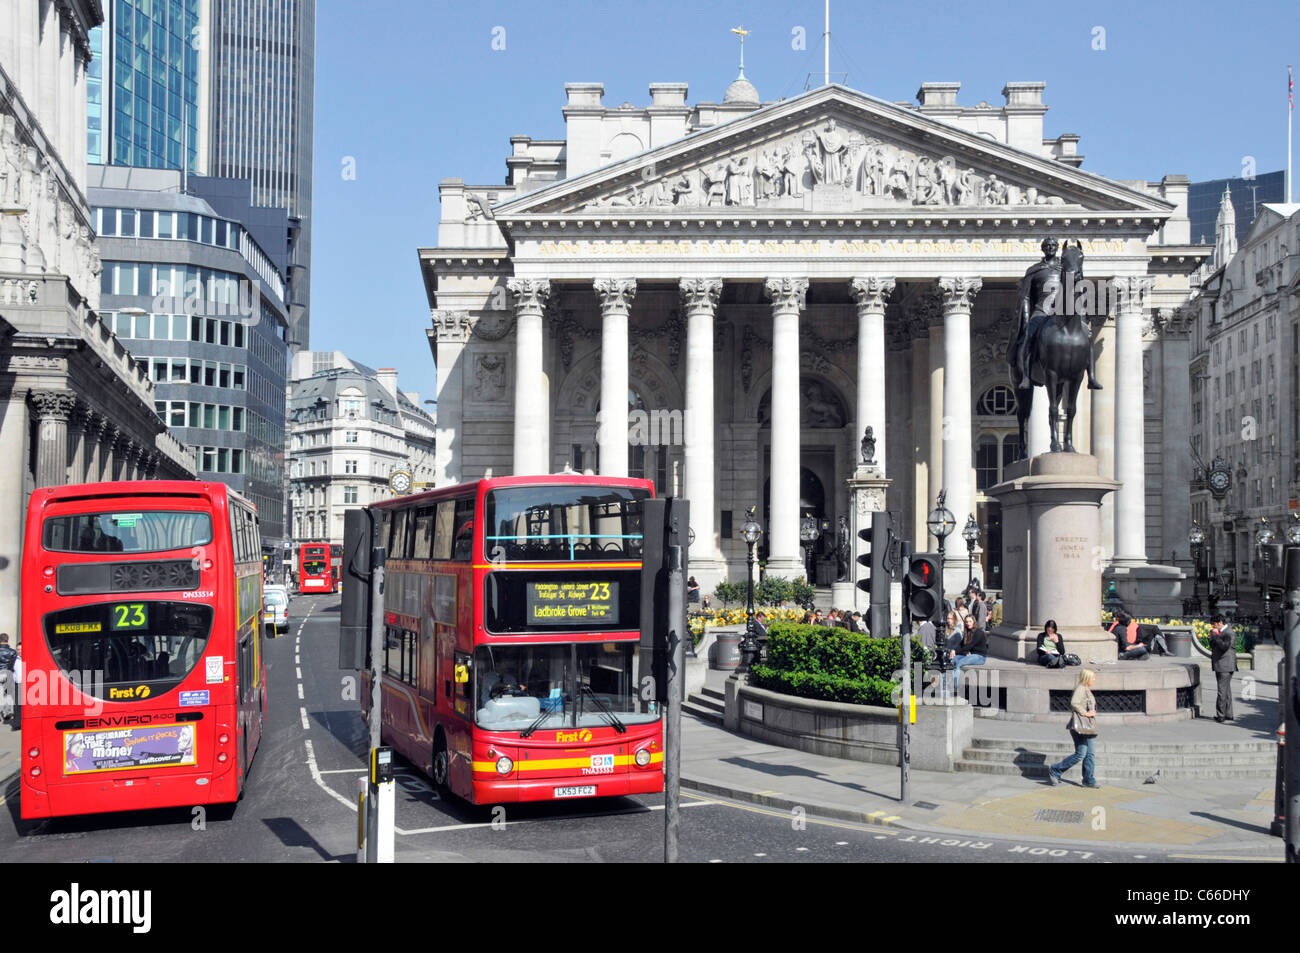 London public transport buses in Threadneedle Street in Square Mile of City of London with The Royal Exchange building - Stock Image